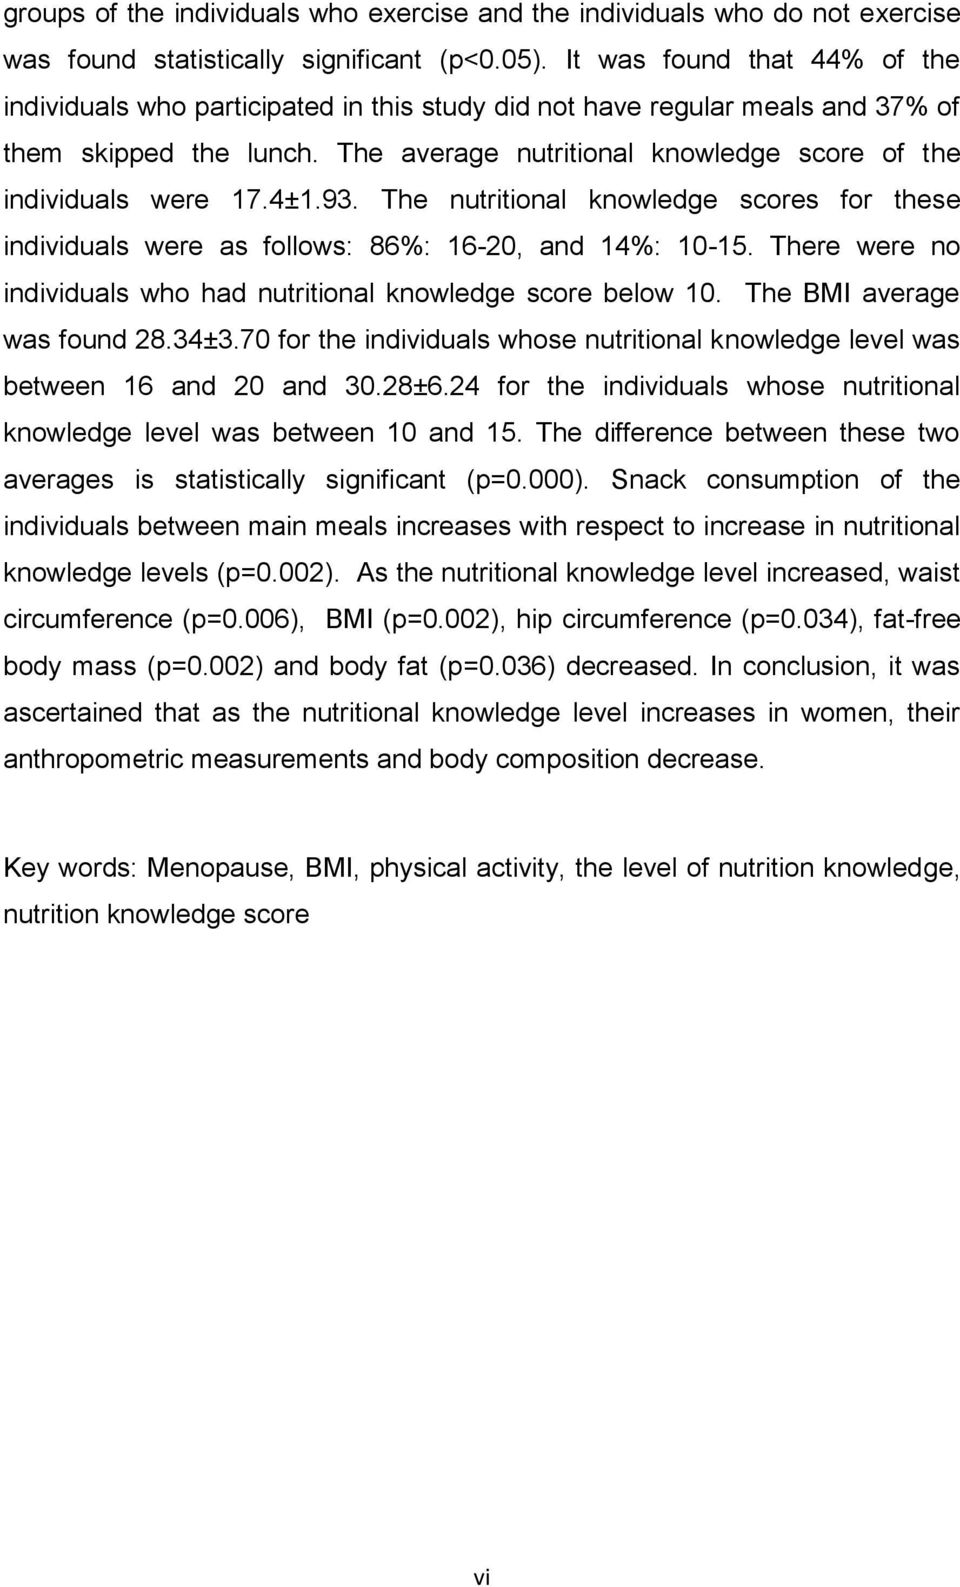 The average nutritional knowledge score of the individuals were 17.4±1.93. The nutritional knowledge scores for these individuals were as follows: 86%: 16-20, and 14%: 10-15.